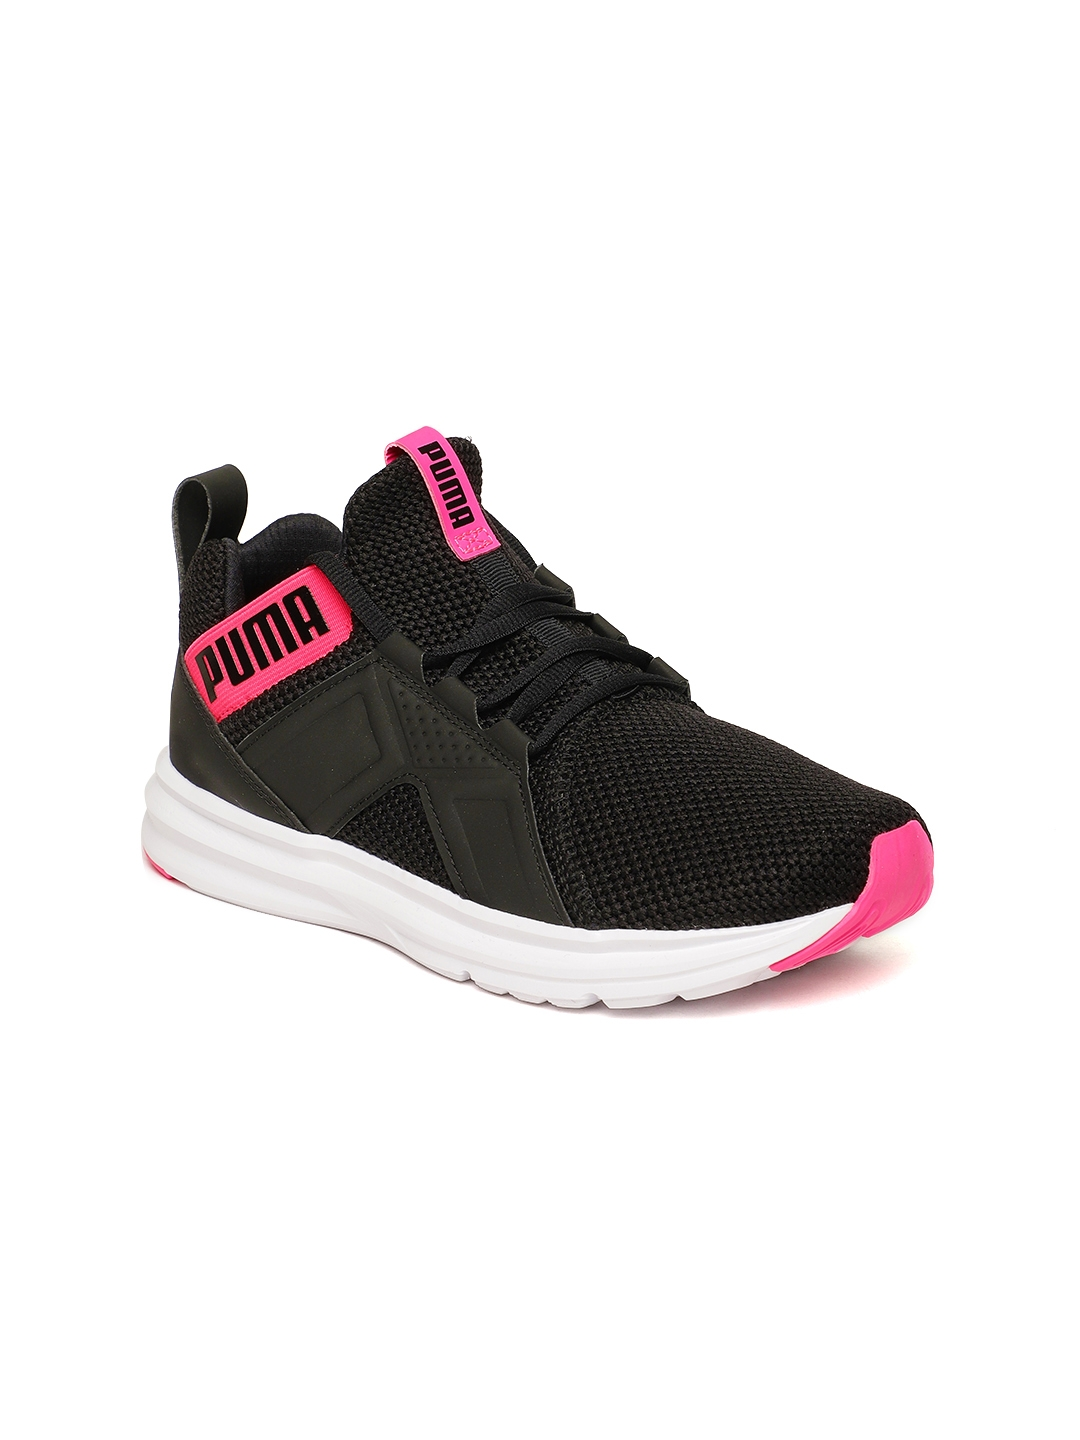 a2a3c067b86b Buy Puma Women Black Enzo Weave Traning Shoes - Sports Shoes for ...